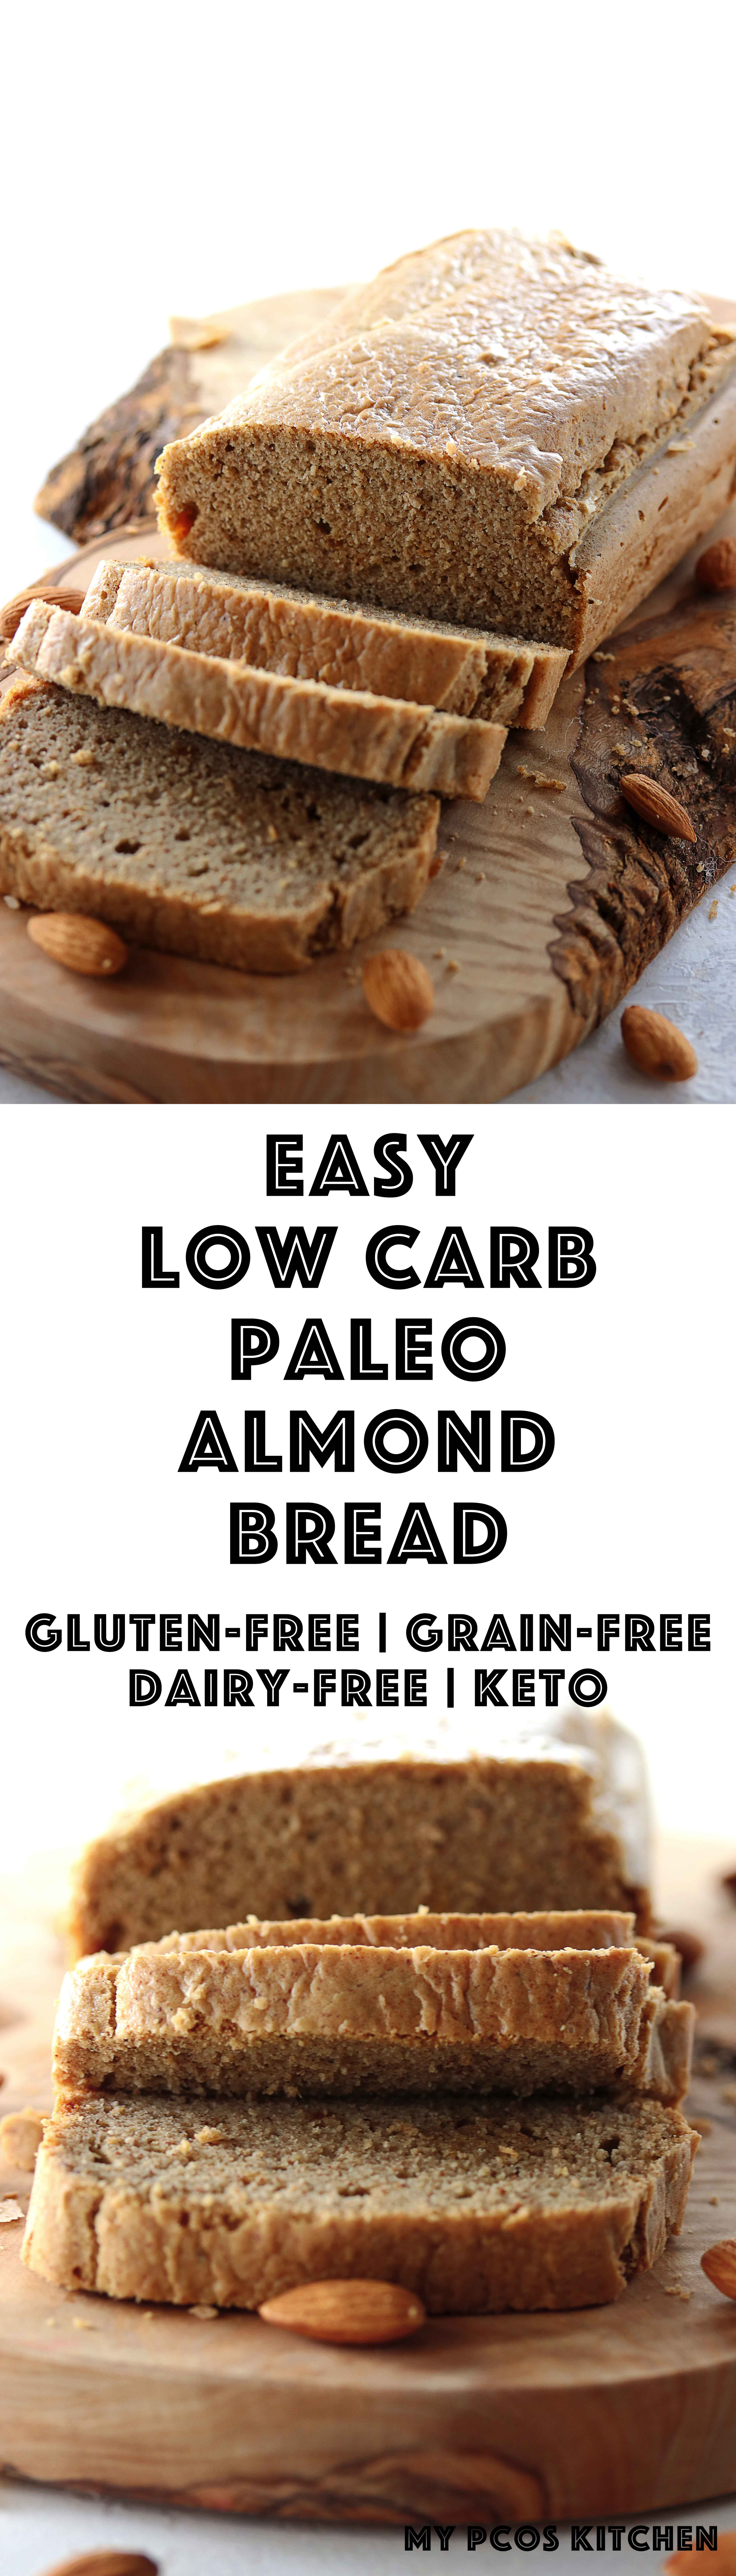 My PCOS Kitchen - Low Carb Paleo Bread with Almond Butter- A gluten-free, starch-free and keto bread made with creamy almond butter.  #keto #paleo #bread #glutenfree